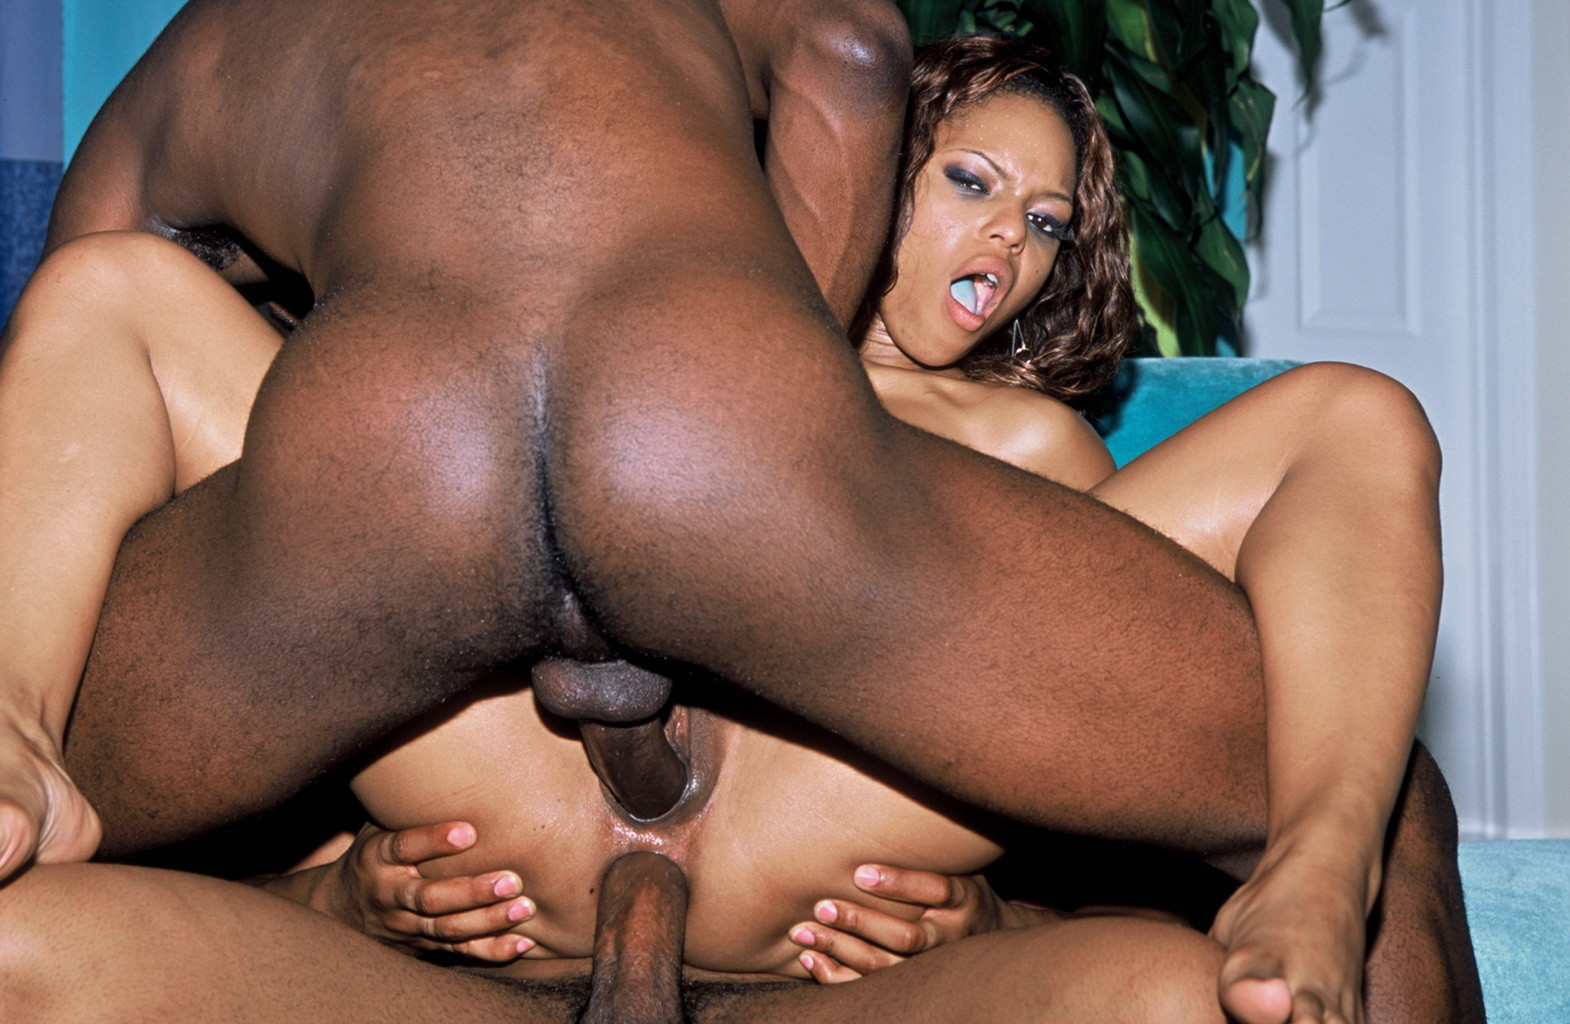 Ebony Slut Teanna Trump Has Her Ass Nailed Hardcore And Receives Cumshot